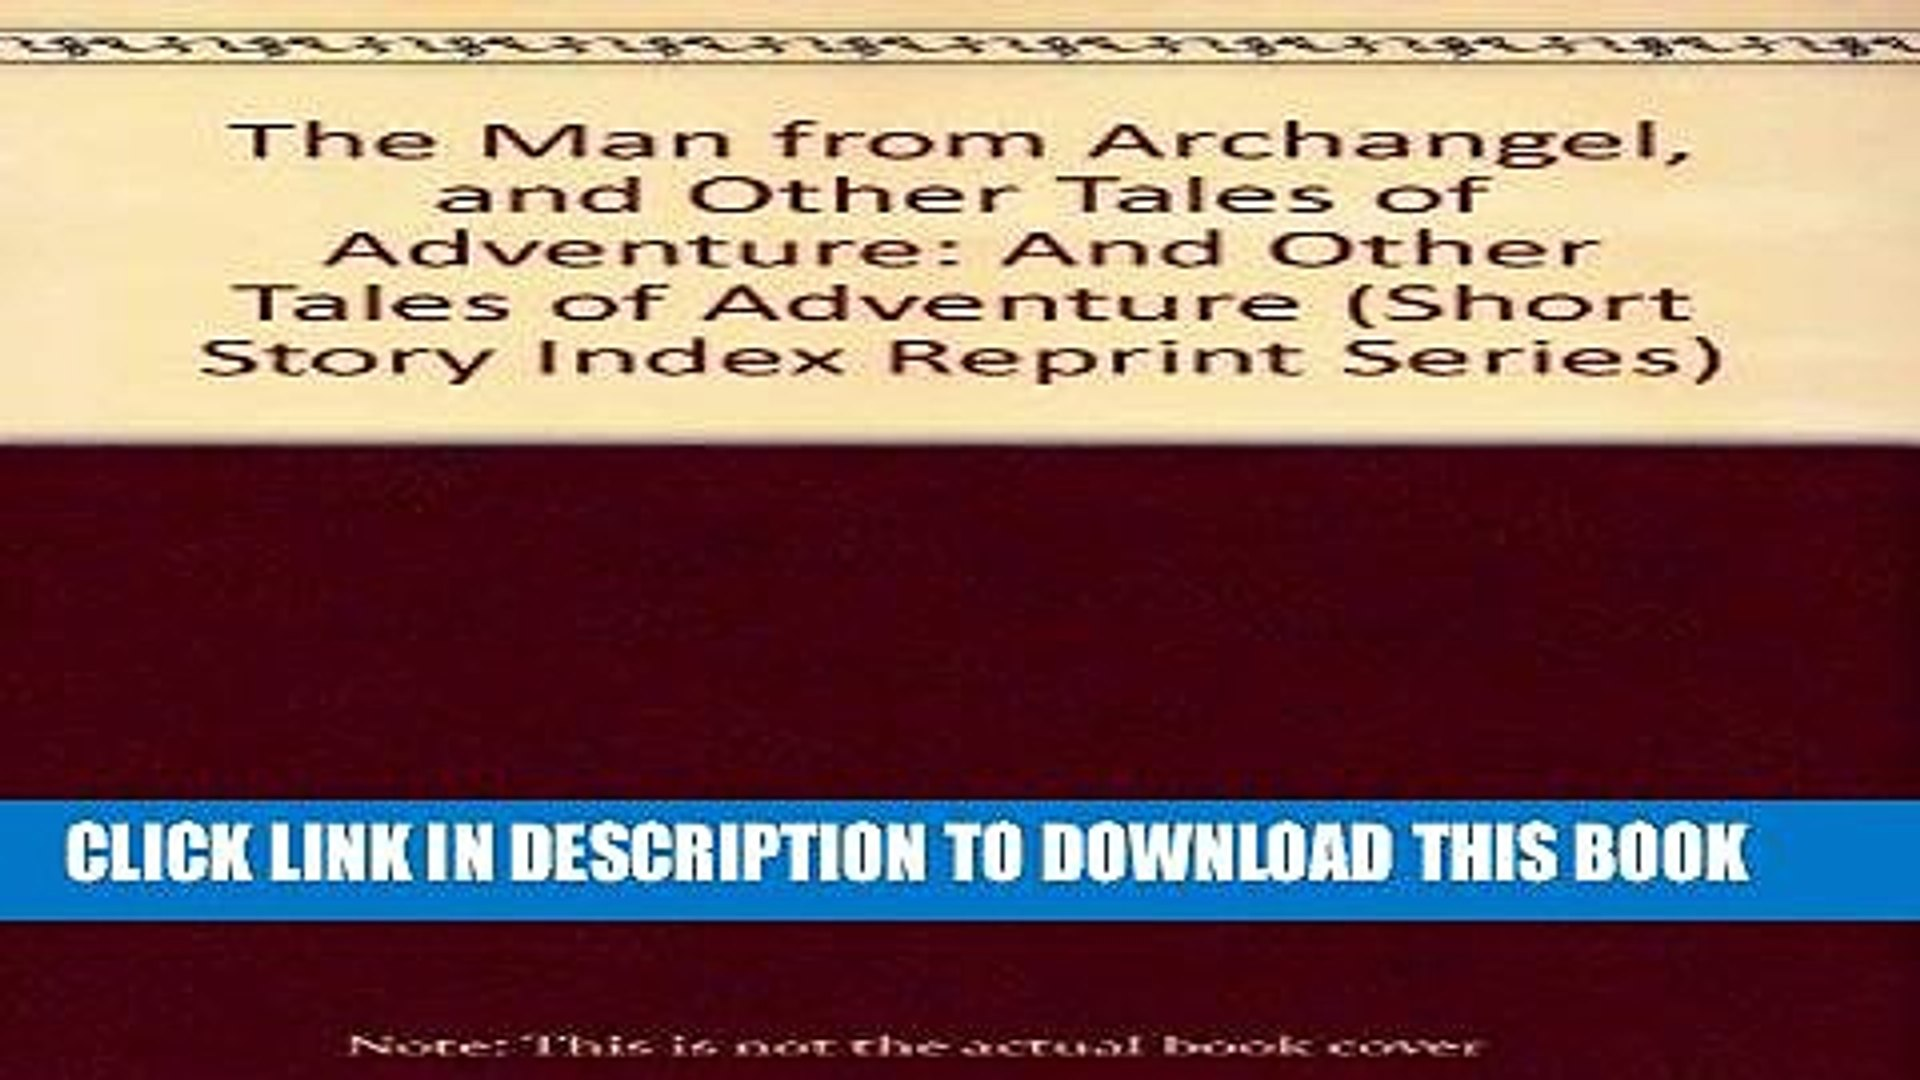 [Free Read] The Man from Archangel, and Other Tales of Adventure: And Other Tales of Adventure